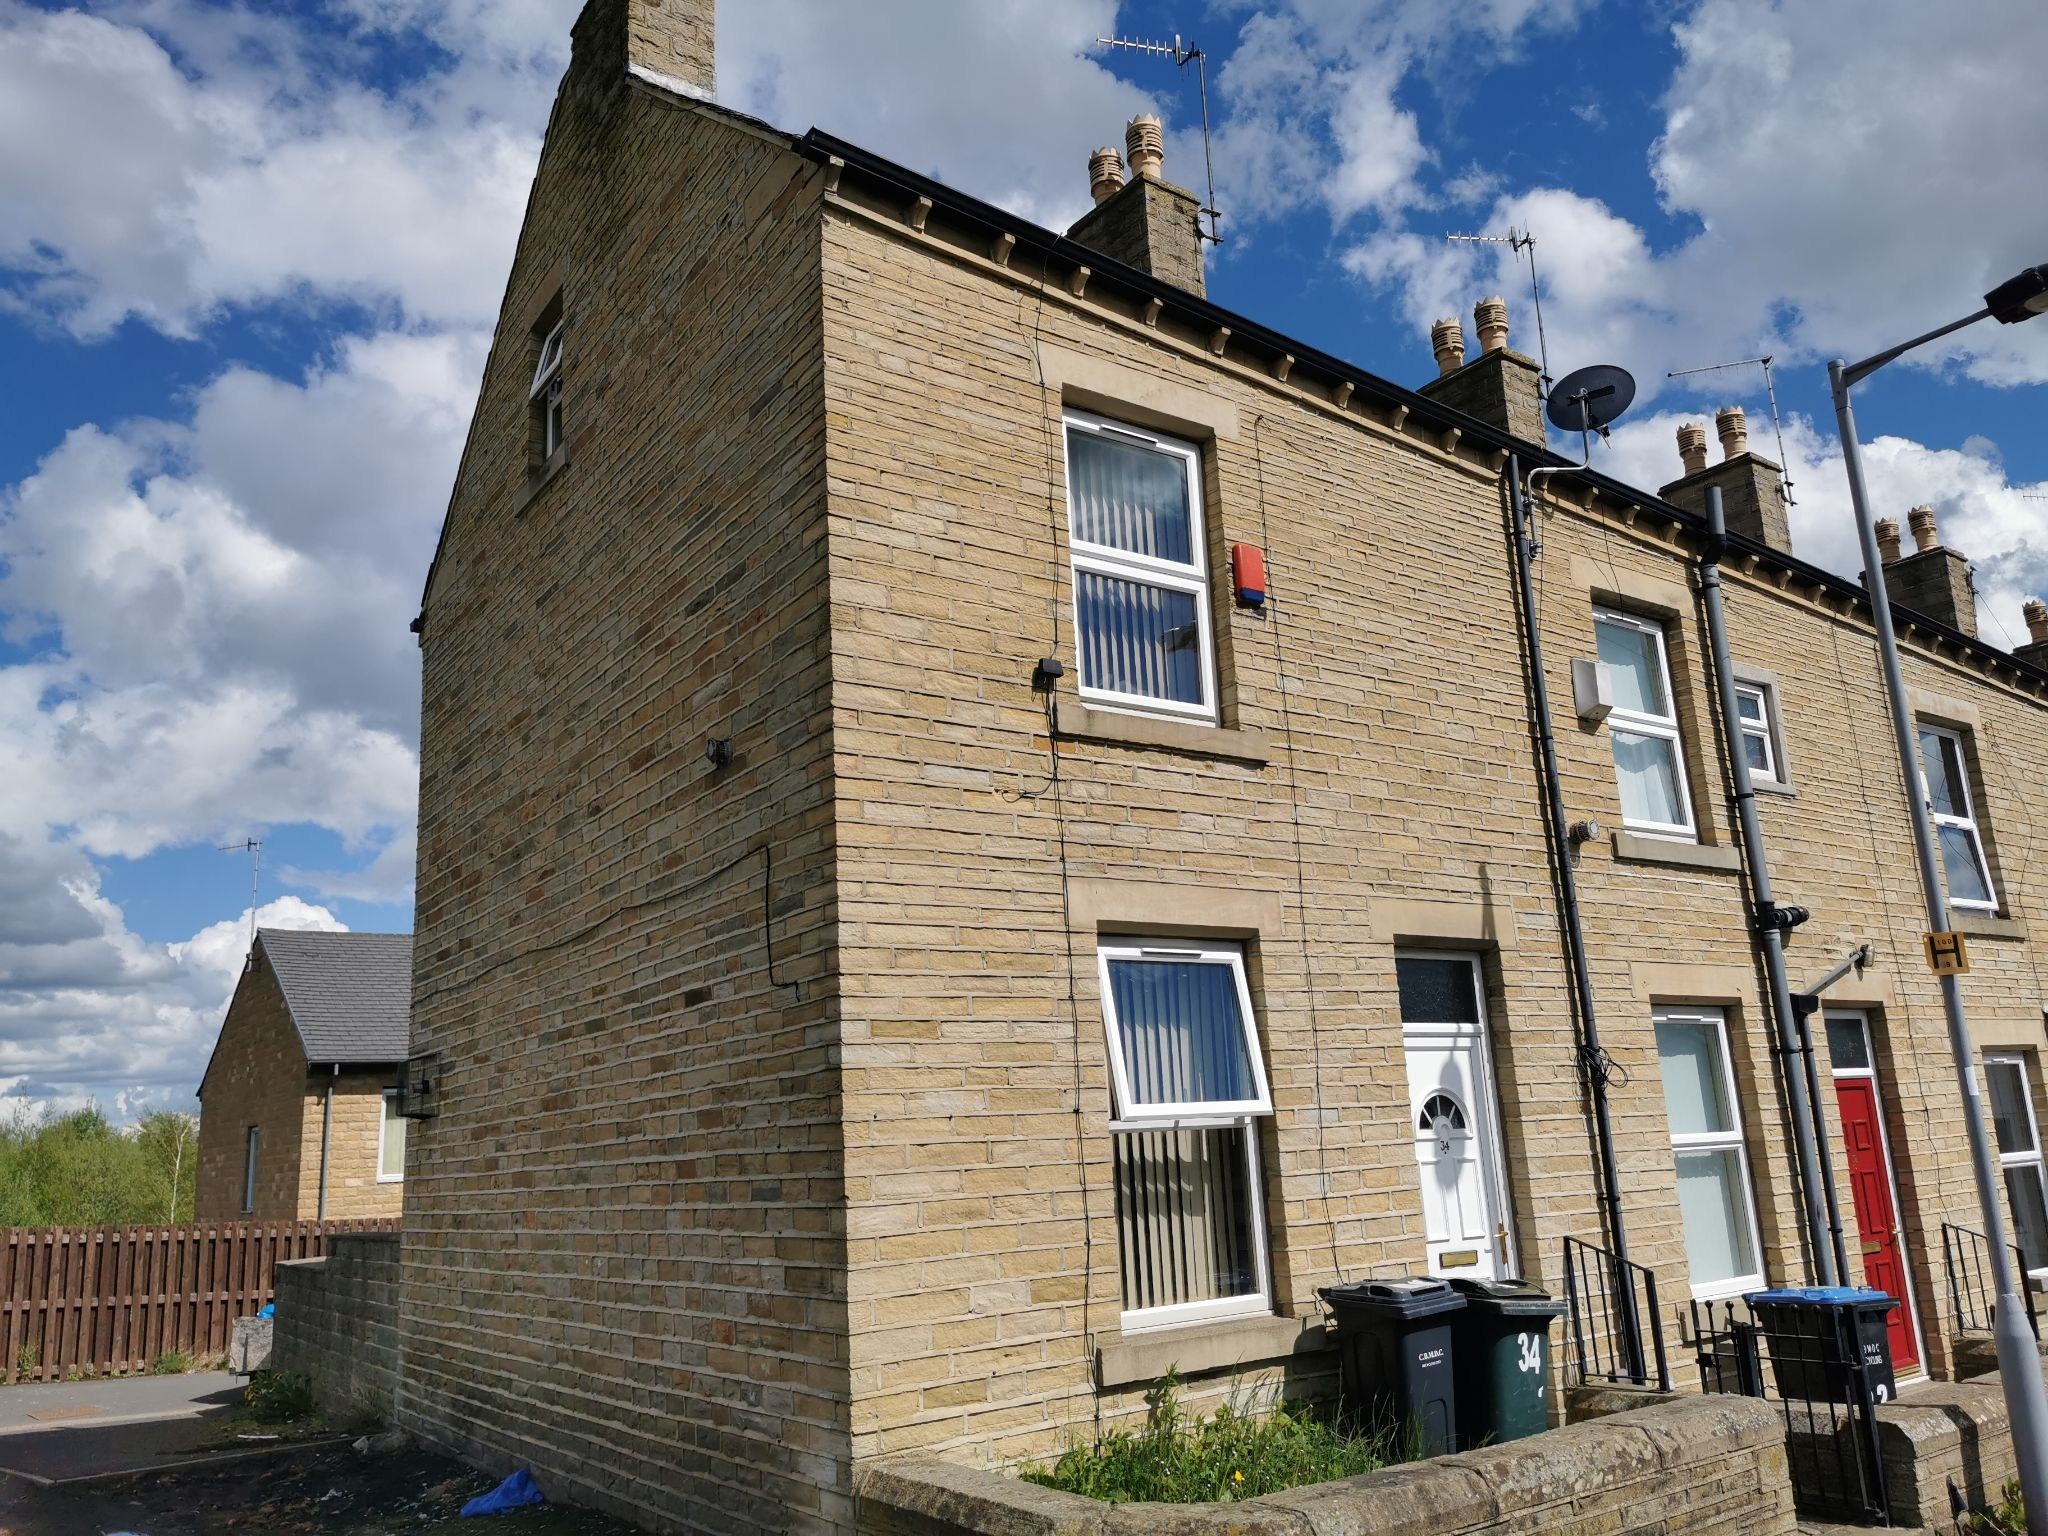 2 bedroom mid terraced house SSTC in Bradford - Photograph 3.